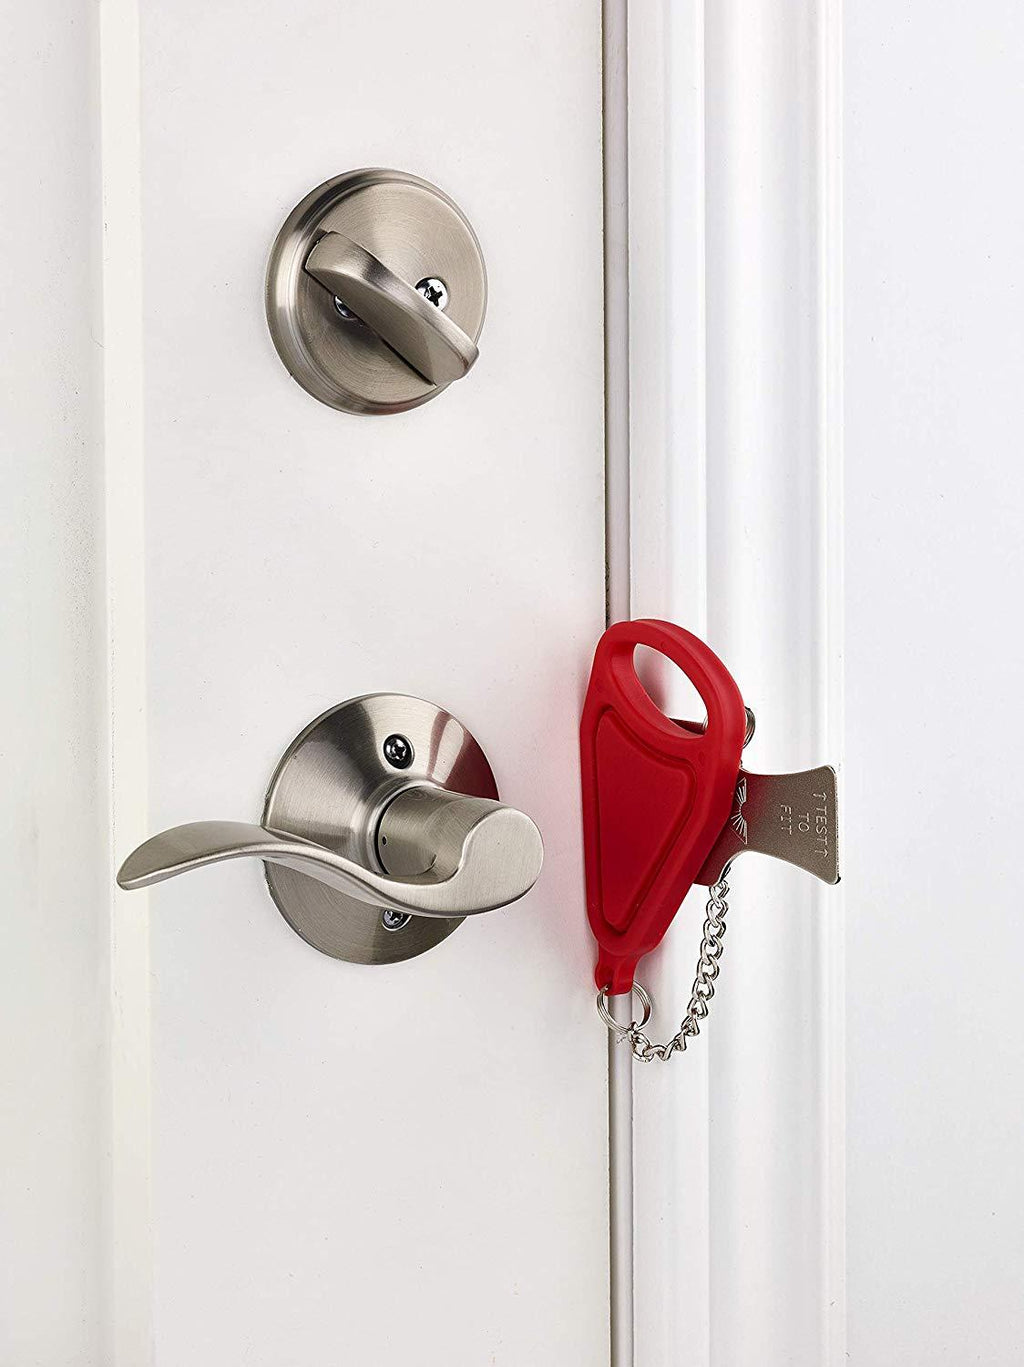 Security Travel Lock, AirBNB Lock, School Lockdown Lock